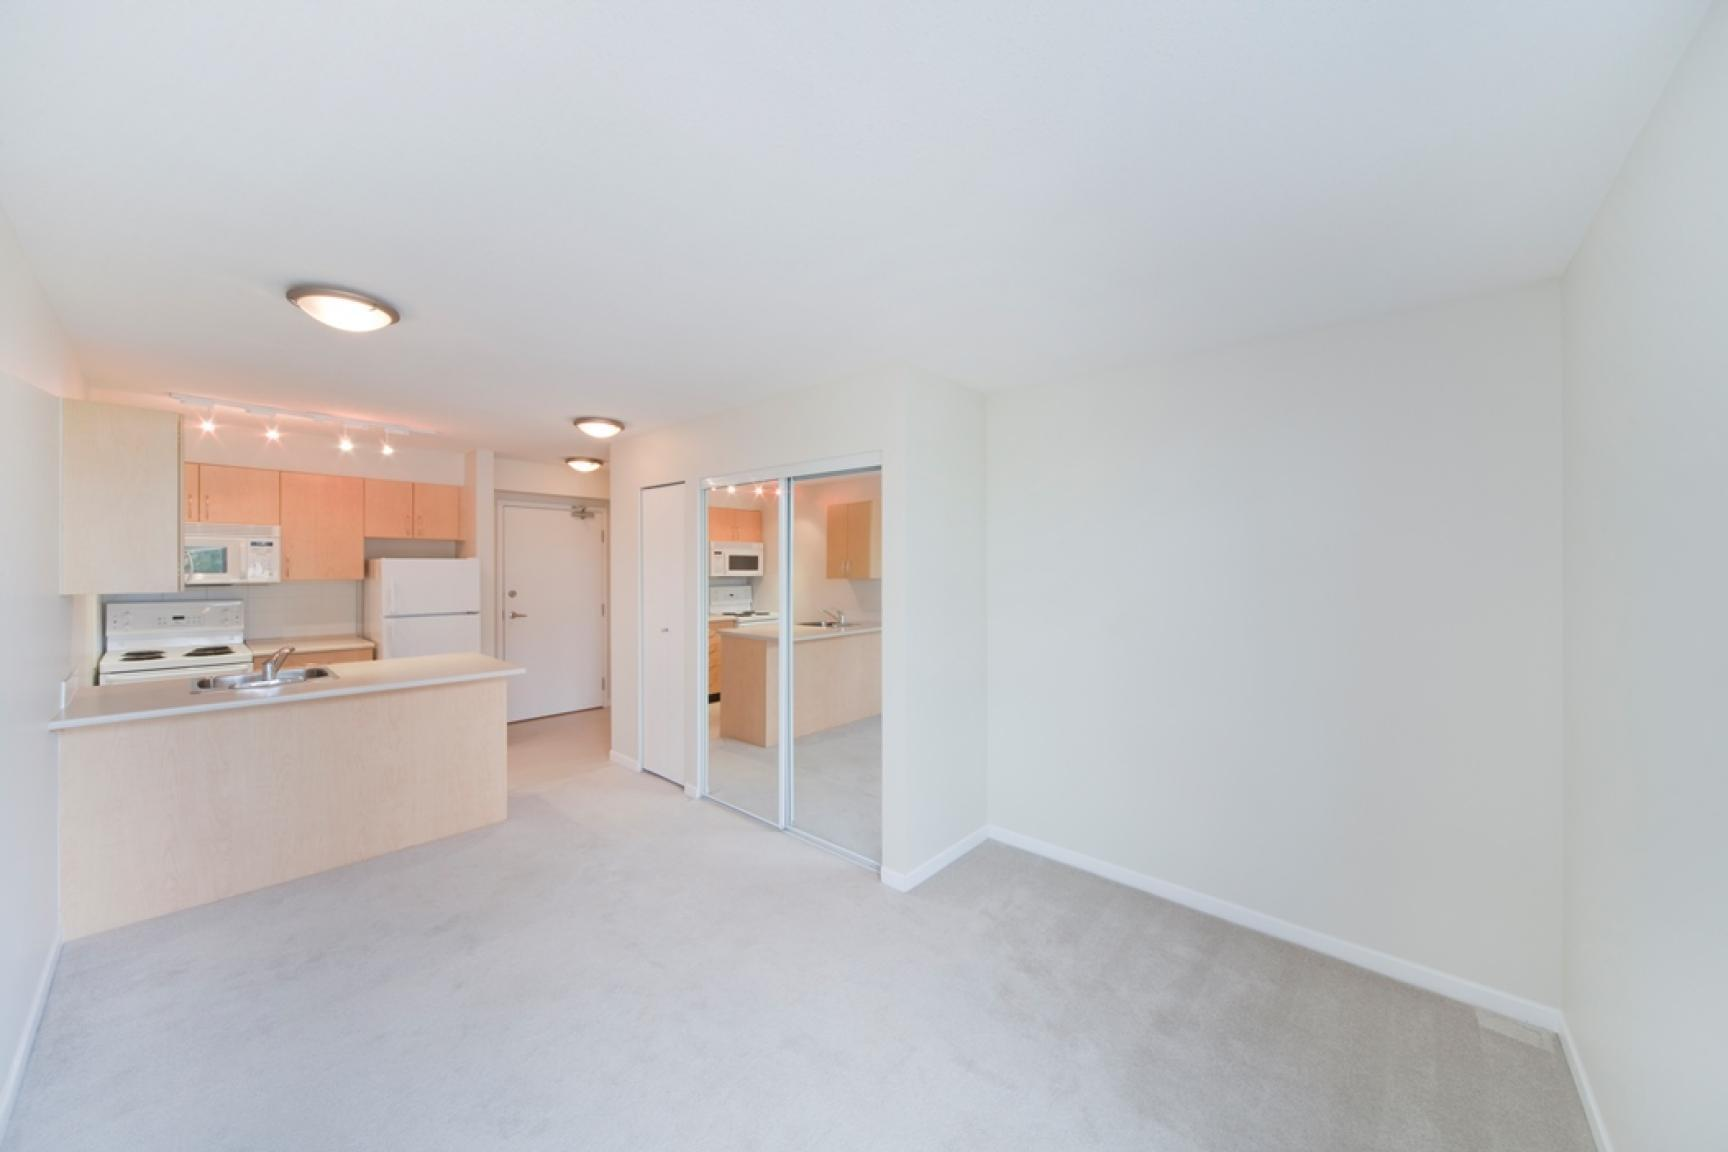 Burnaby Studio Apartments For Rent